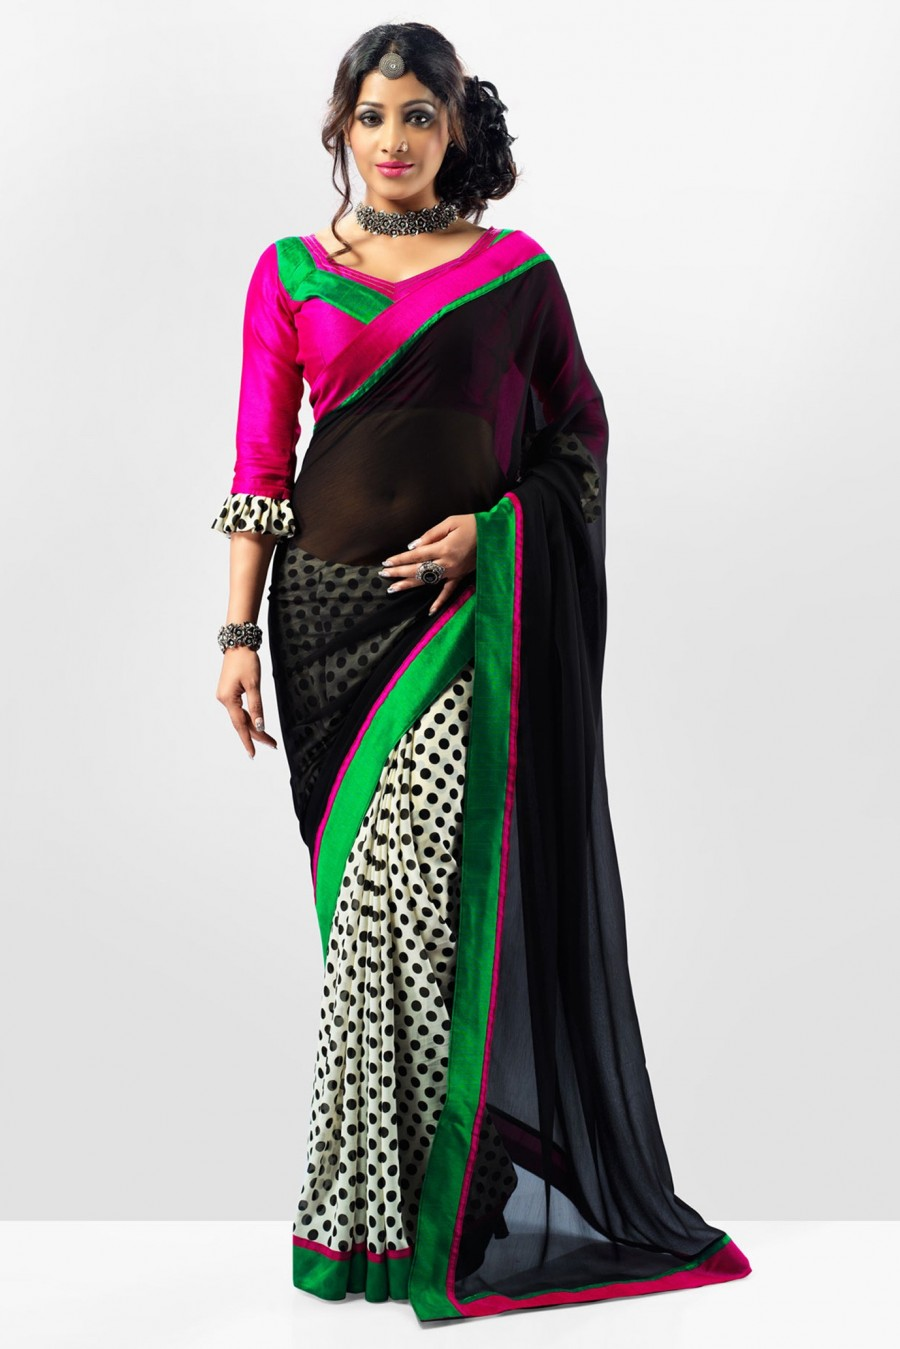 Buy Black and White Half and Half Designer Saree Made of Georgette Fabric Online